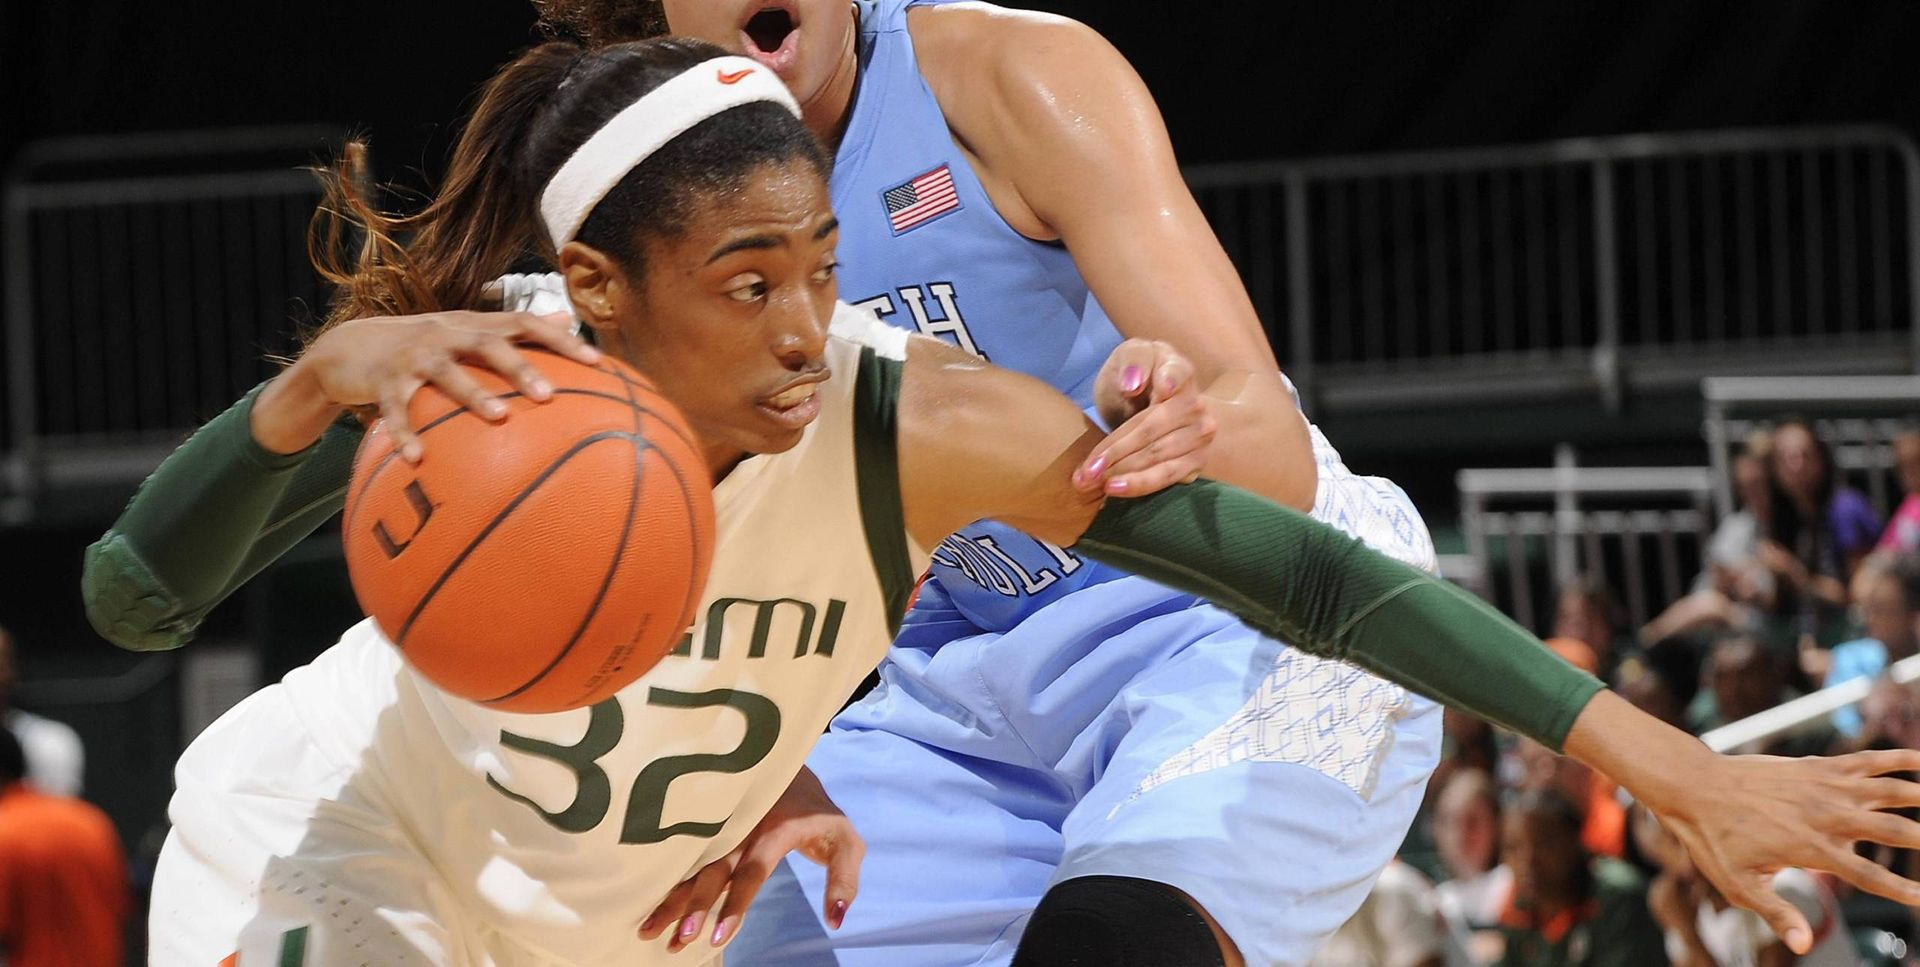 WBB Falls on Buzzer-Beater to No. 11 UNC